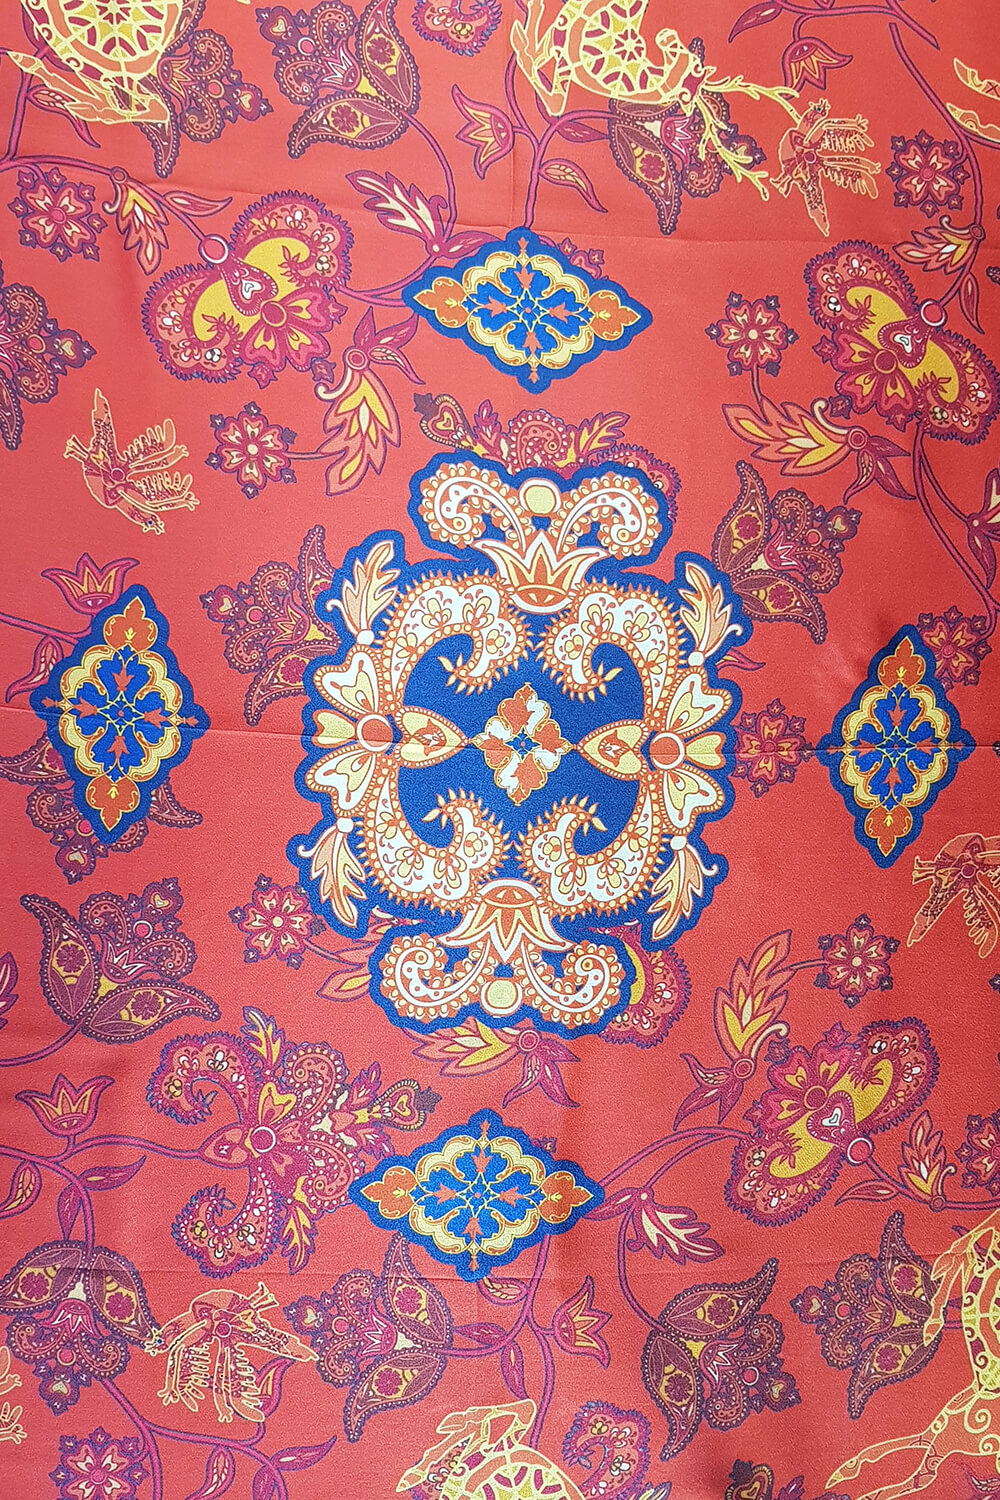 silk scarf in orange and blue